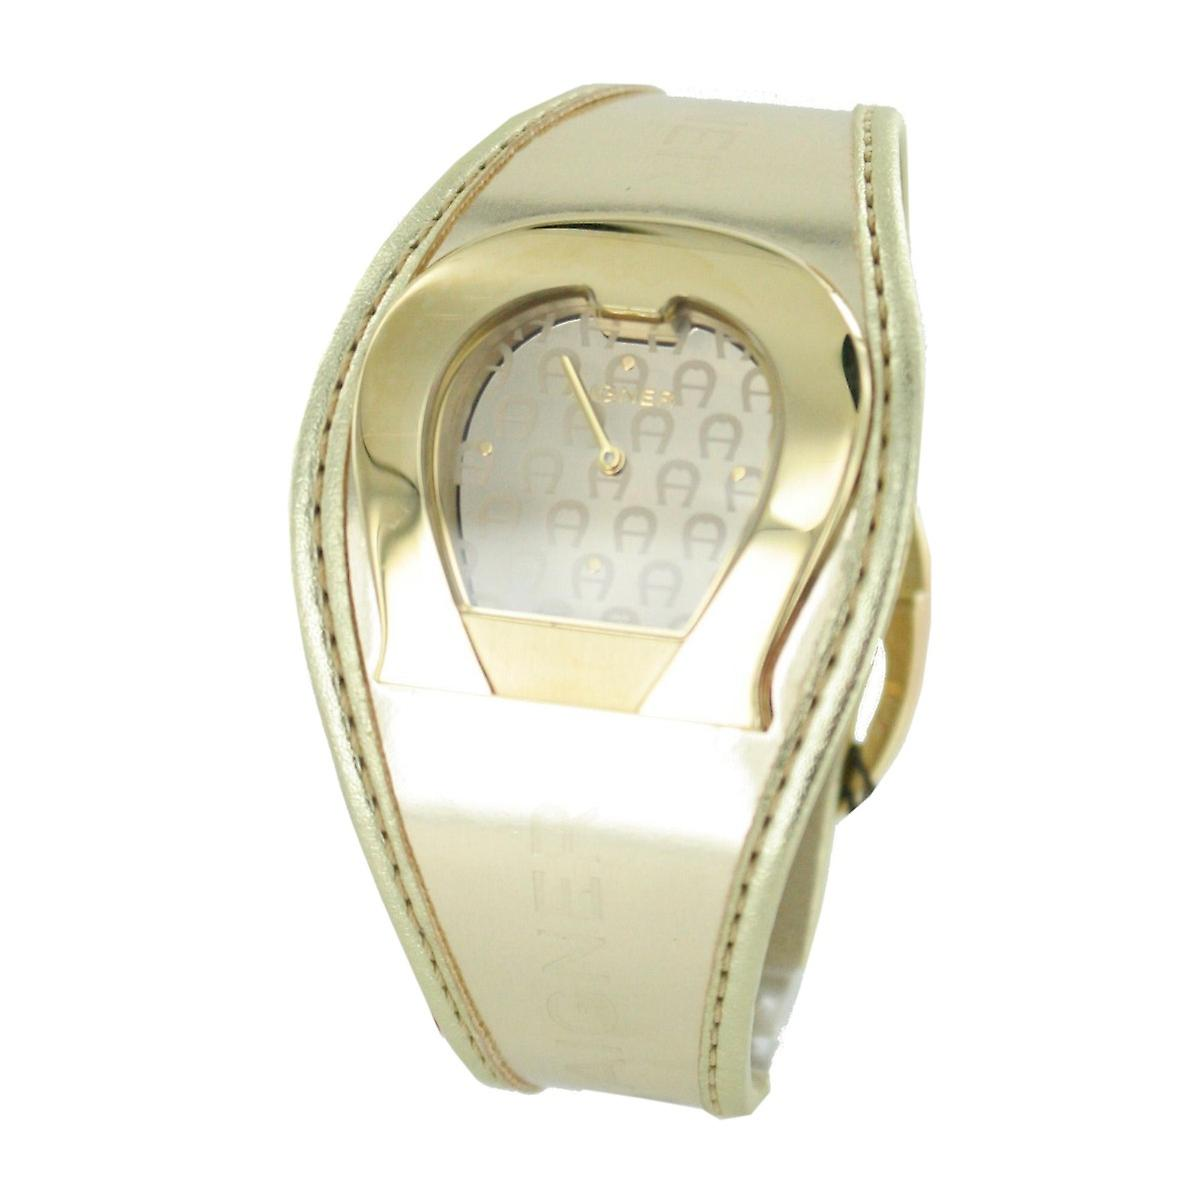 Aigner Rantai Gold Cover Wiring Diagram 2018 A46606 Casoria Ladies Watch Wristwatch Leather Band Tone